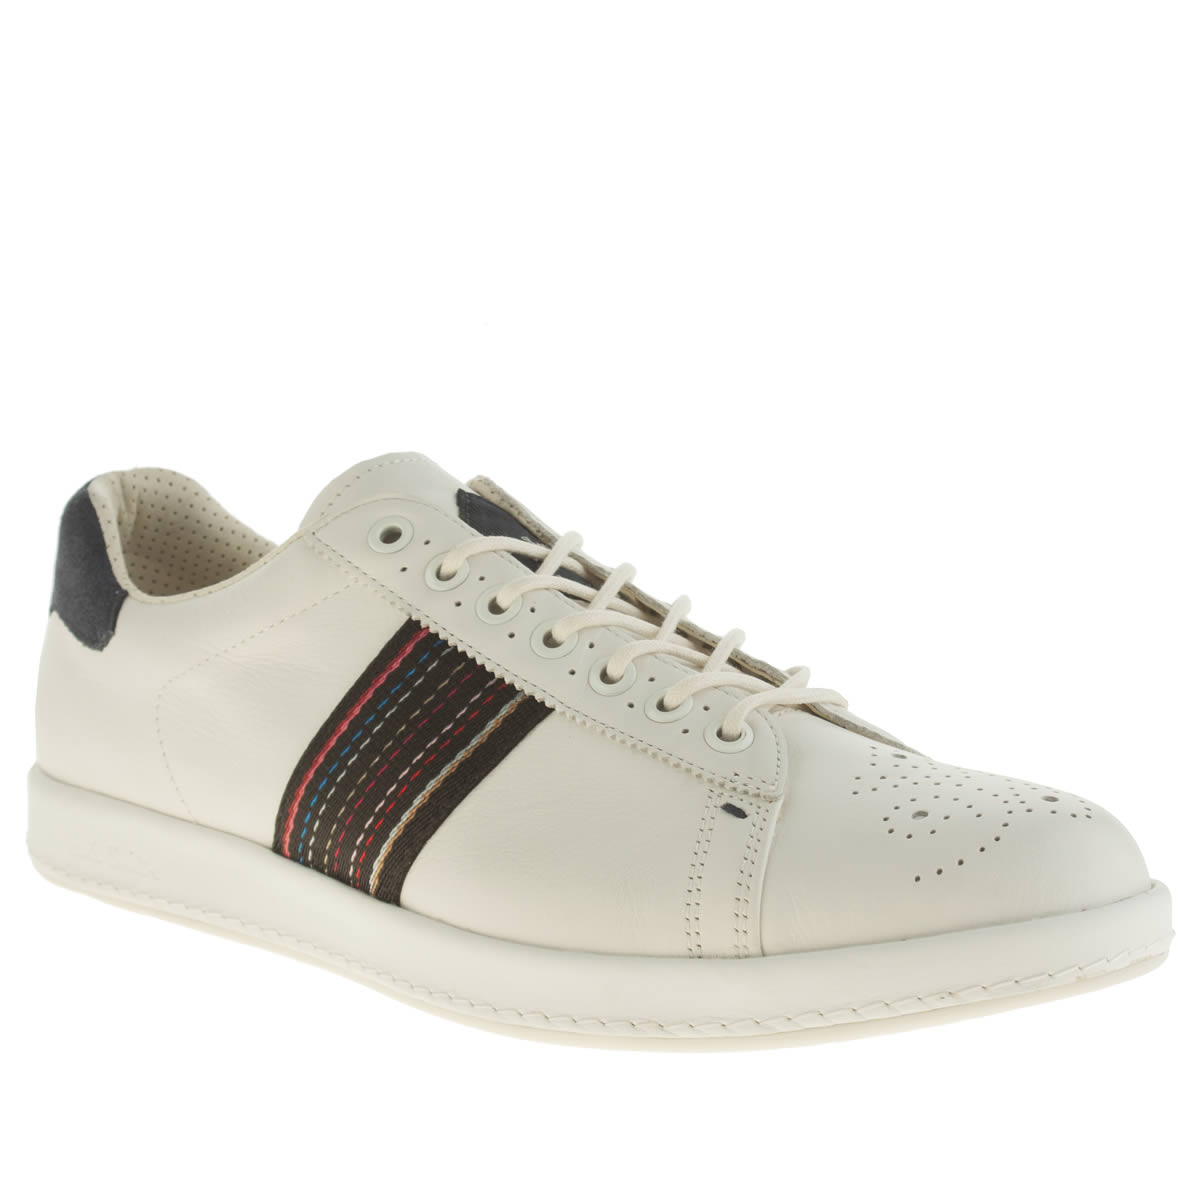 Paul Smith Shoes Paul Smith Shoes White & Navy Rabbit Trainers